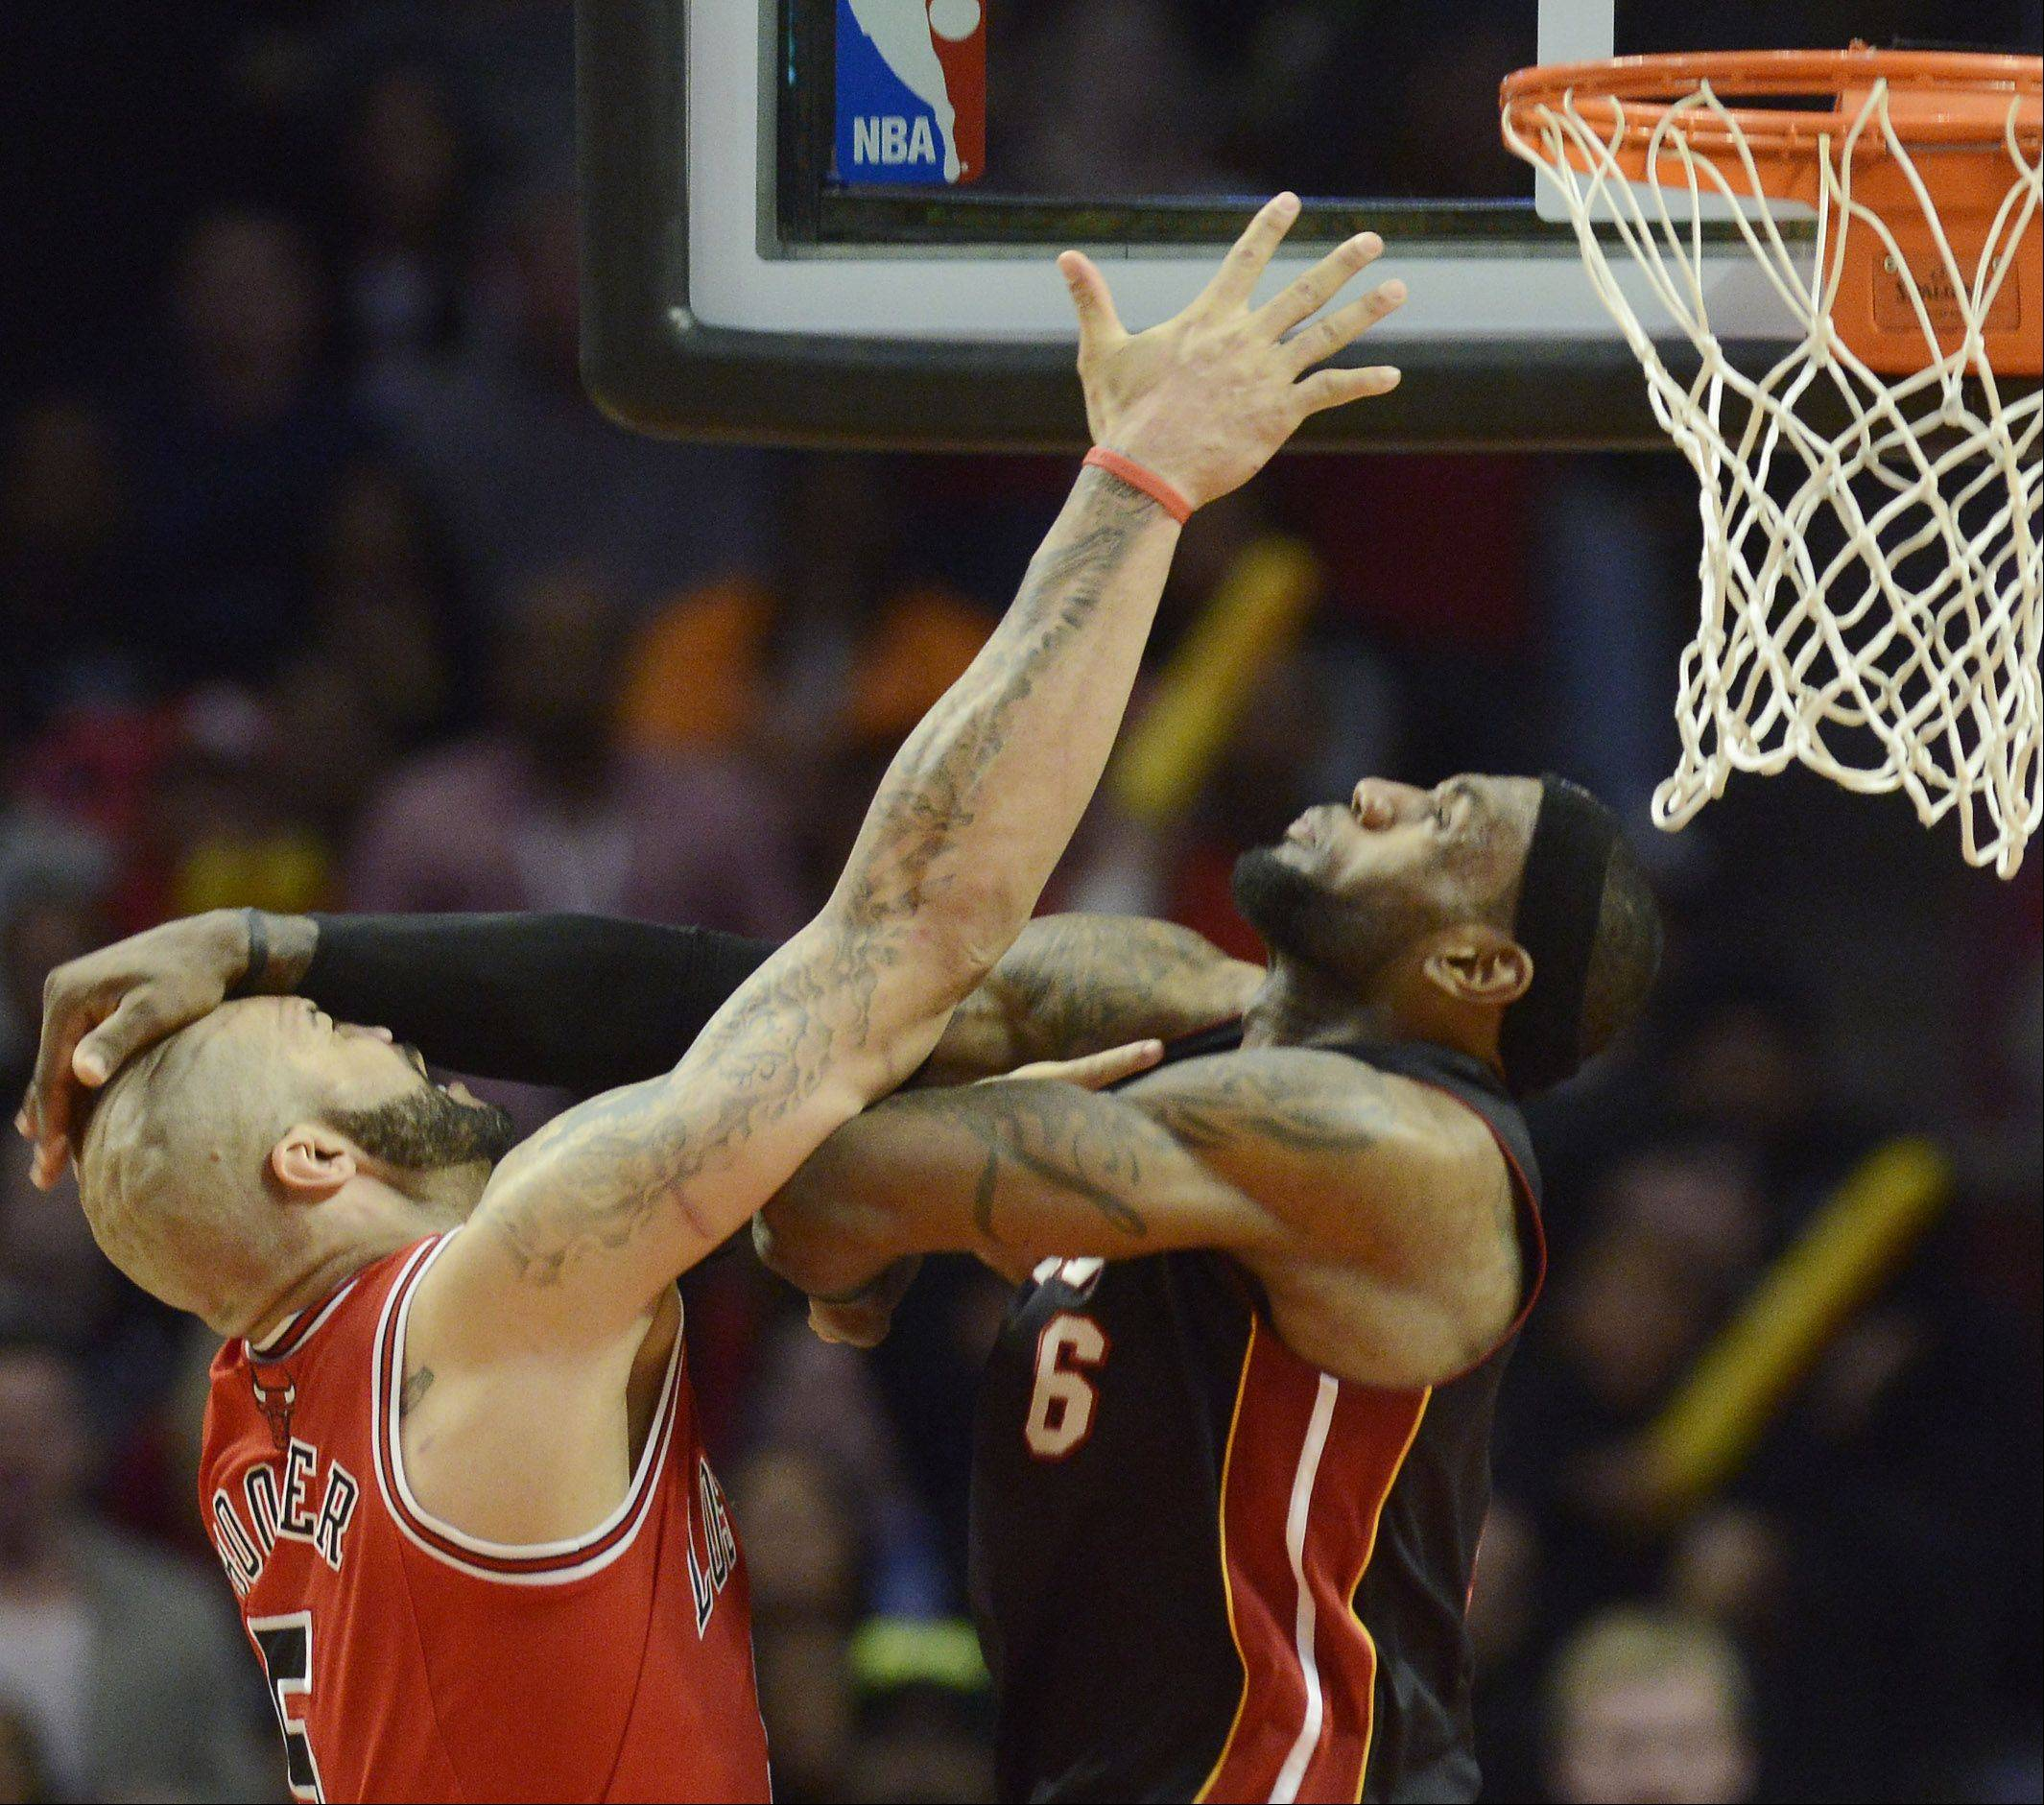 Carlos Boozer of the Bulls and LeBron James of the Heat make contact under the basket.